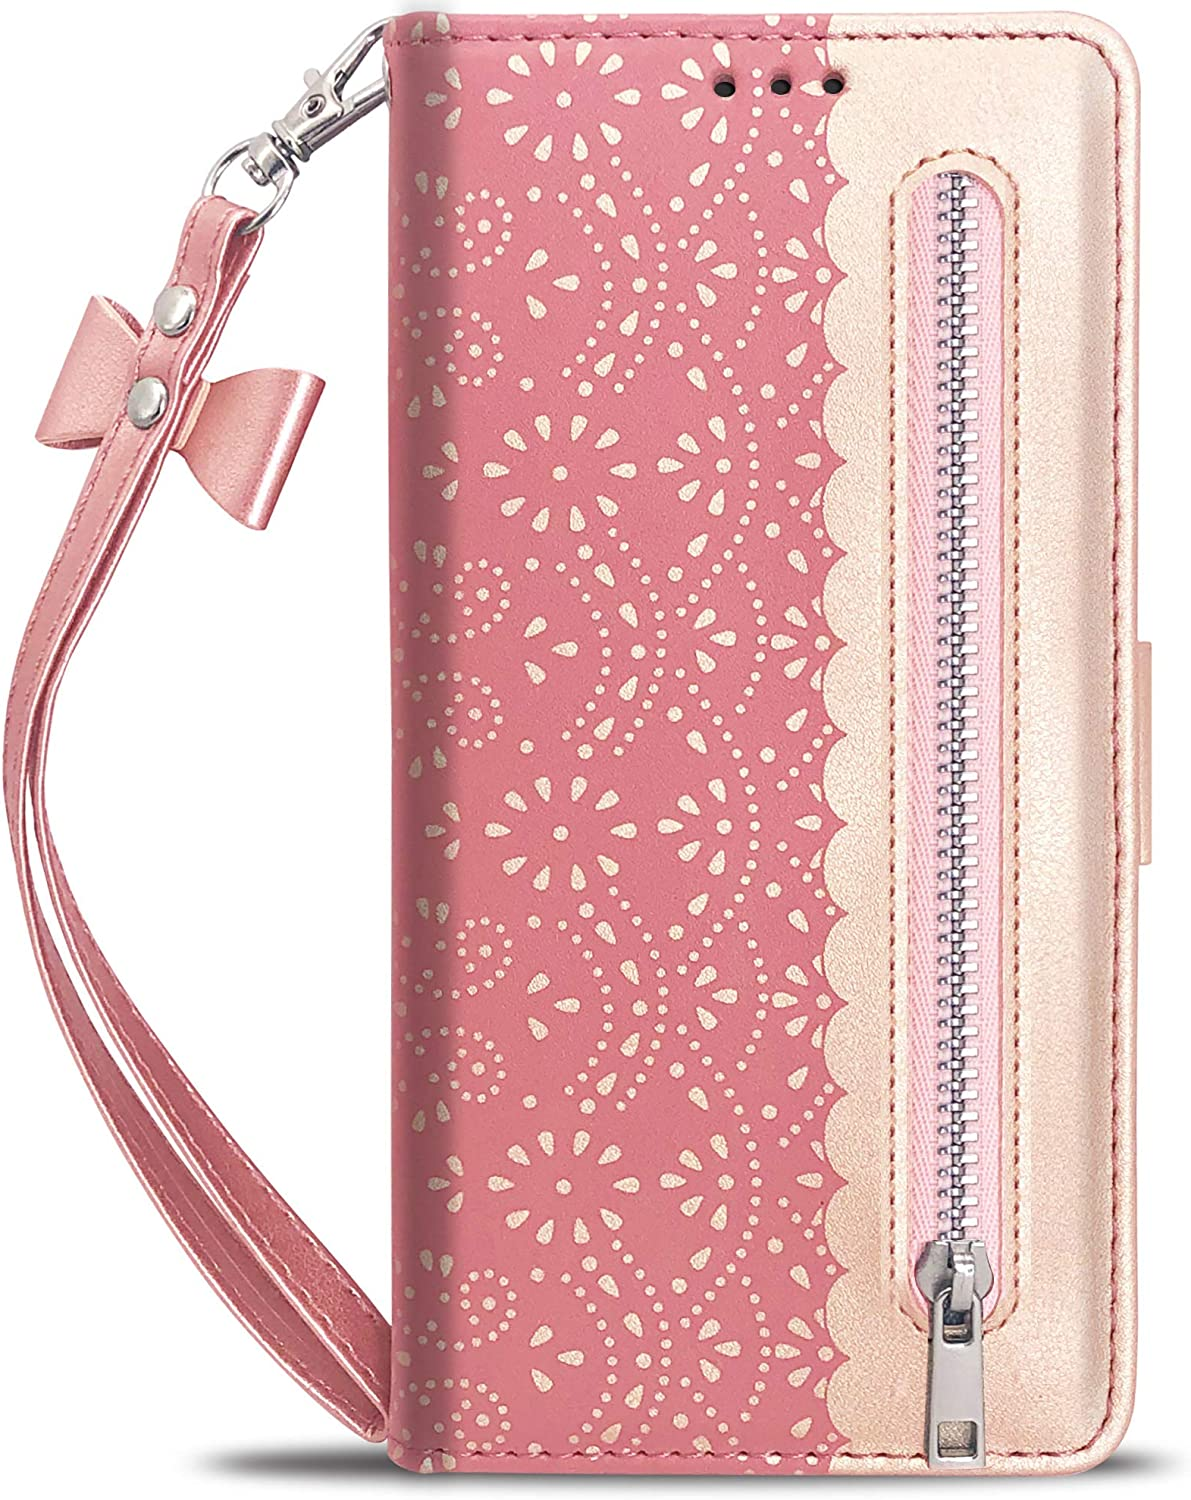 Luxury Flip Wallet Case for iPhone 11 Pro Max (6.5 Inch),Printed Lace Folio Kickstand Feature with Wristlet Lanyard Card Slots Cover for Apple iPhone11 ProMax (Rose Gold)